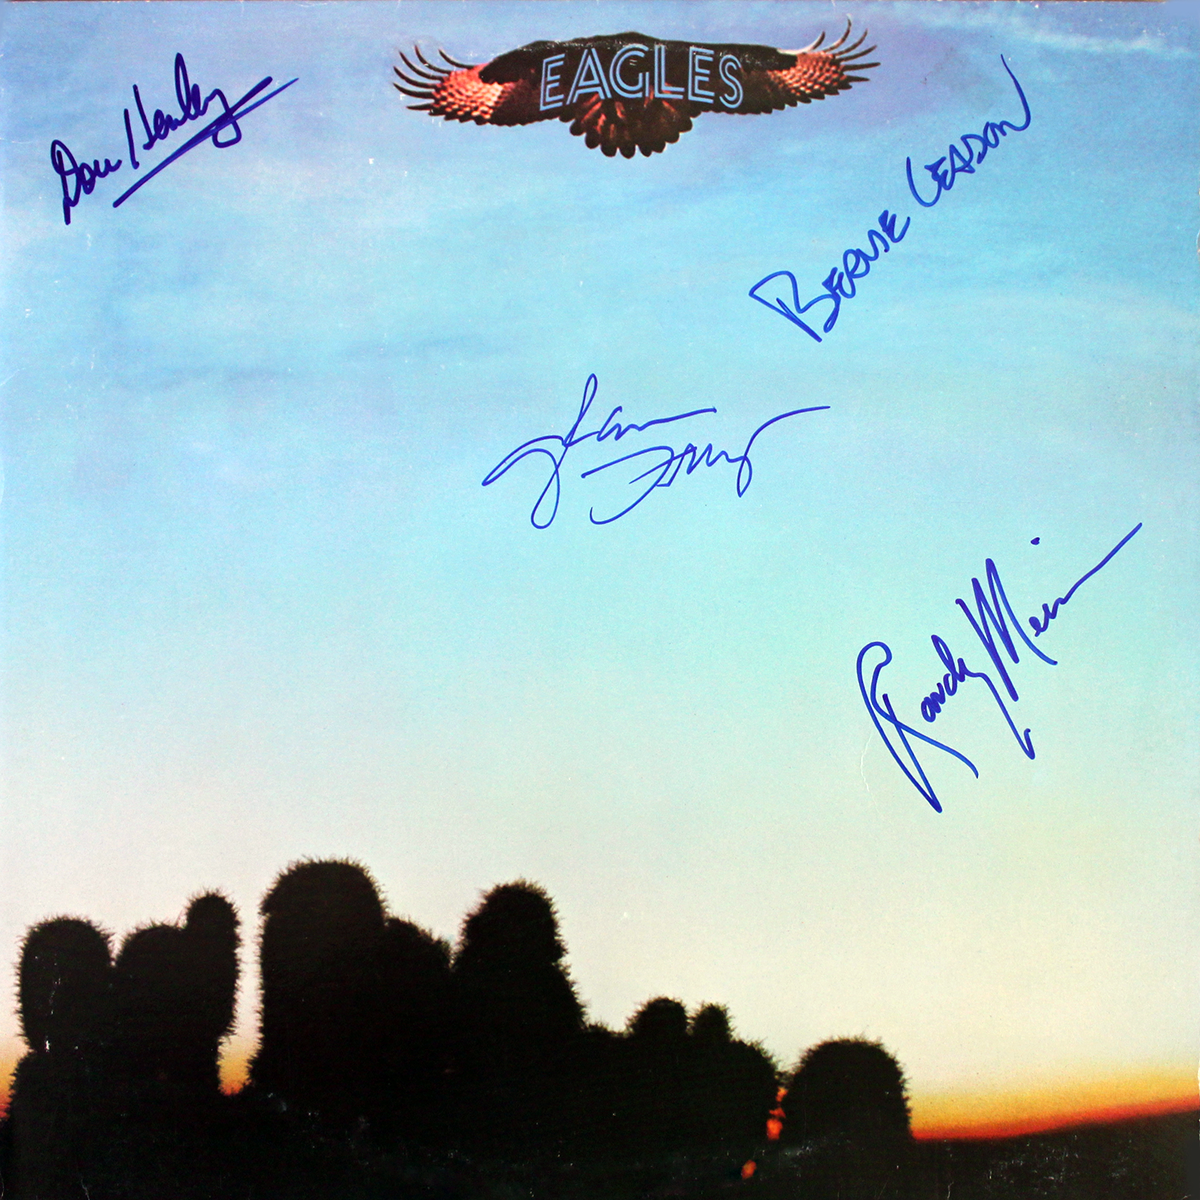 Eagles LP #1